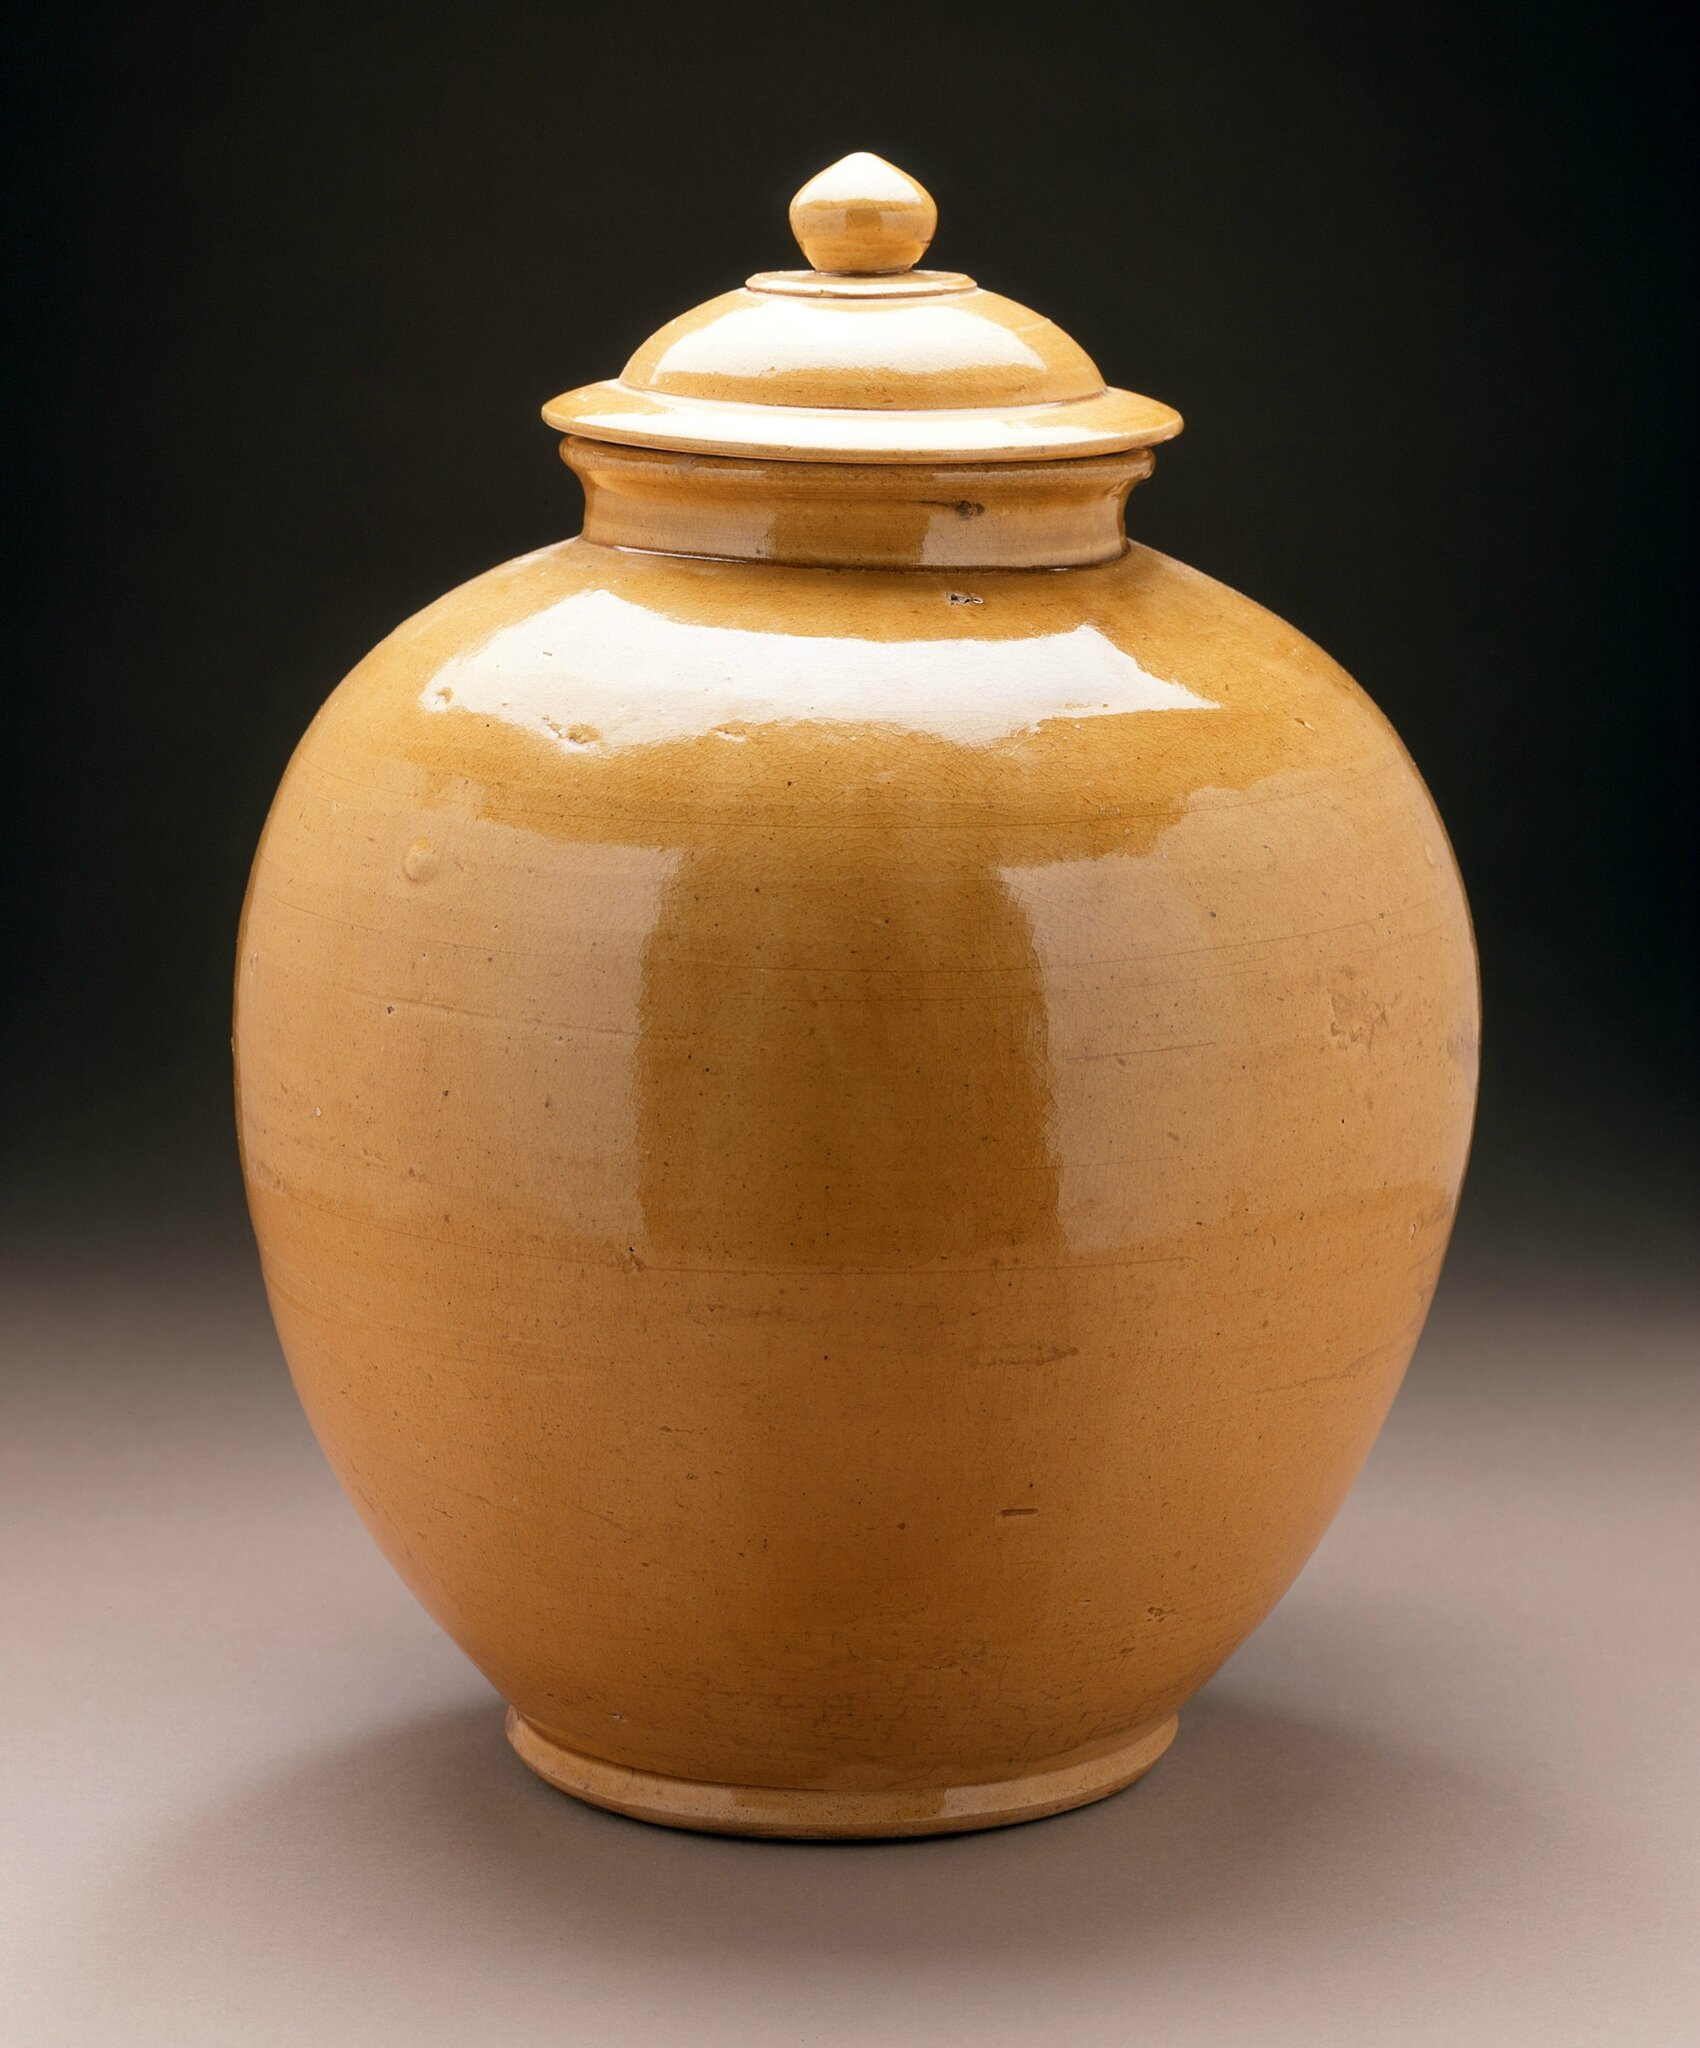 Lidded Jar (Guan), China, Middle Tang dynasty, about 700-800